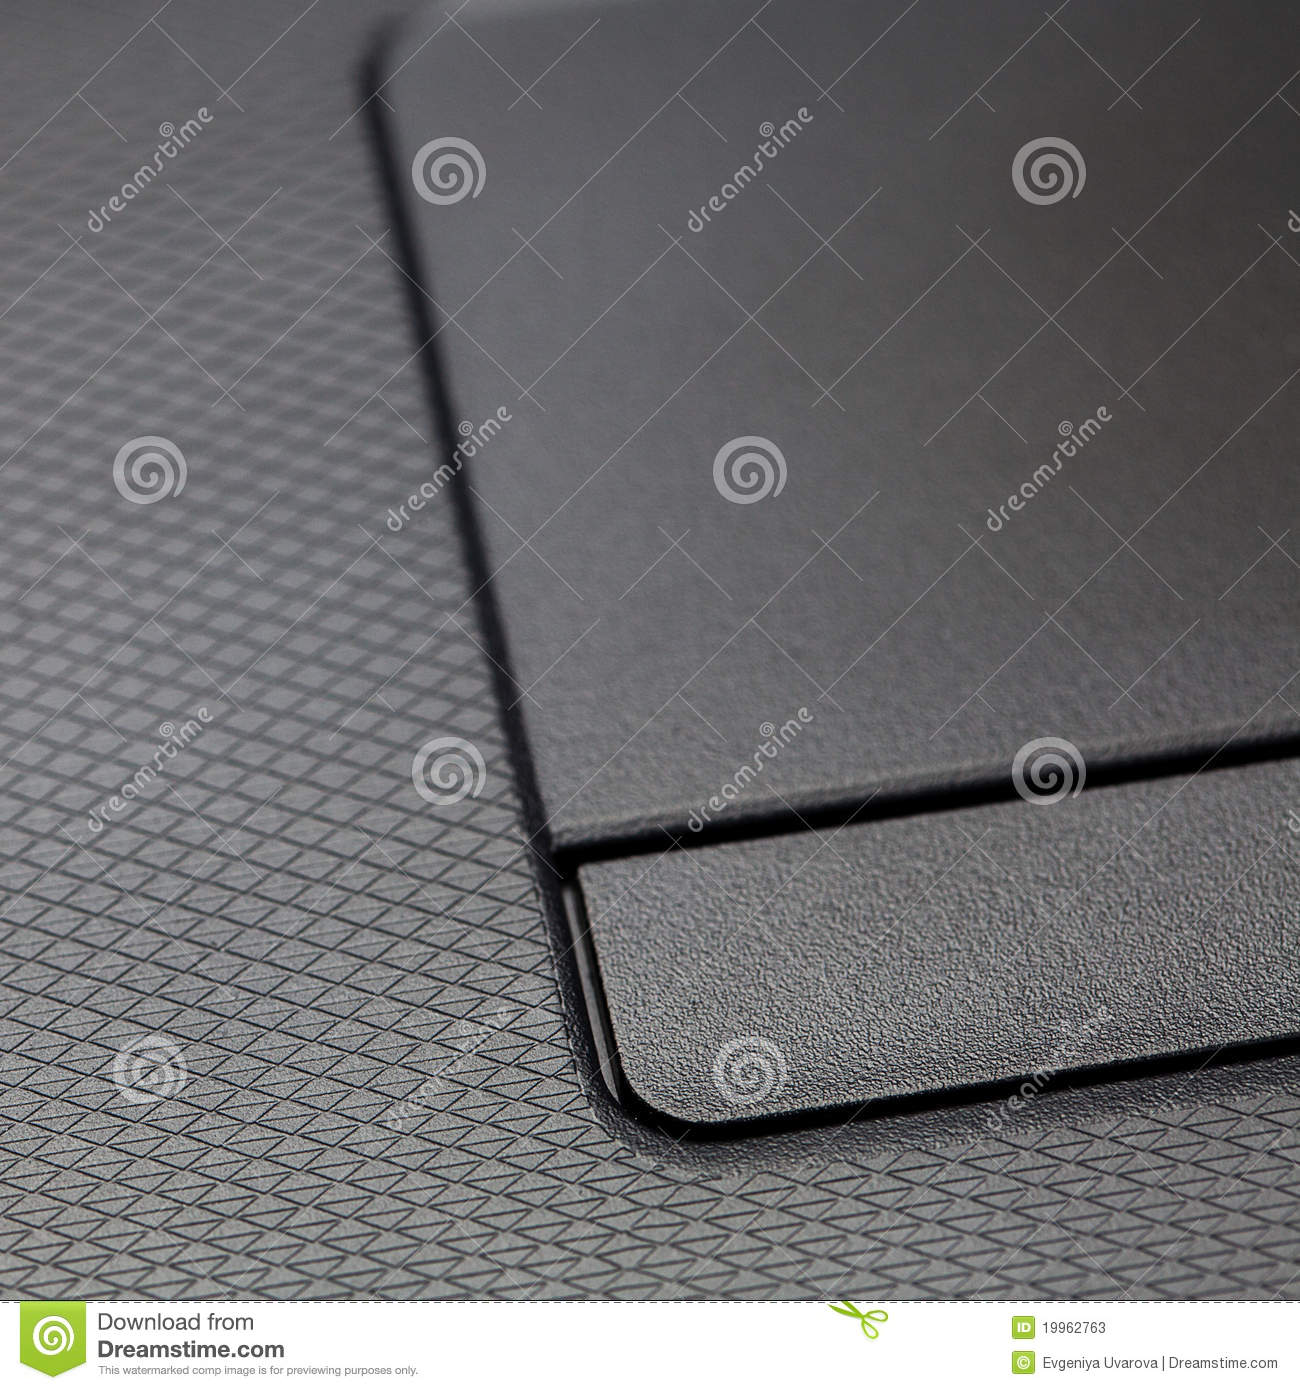 Touchpad and keyboard laptop